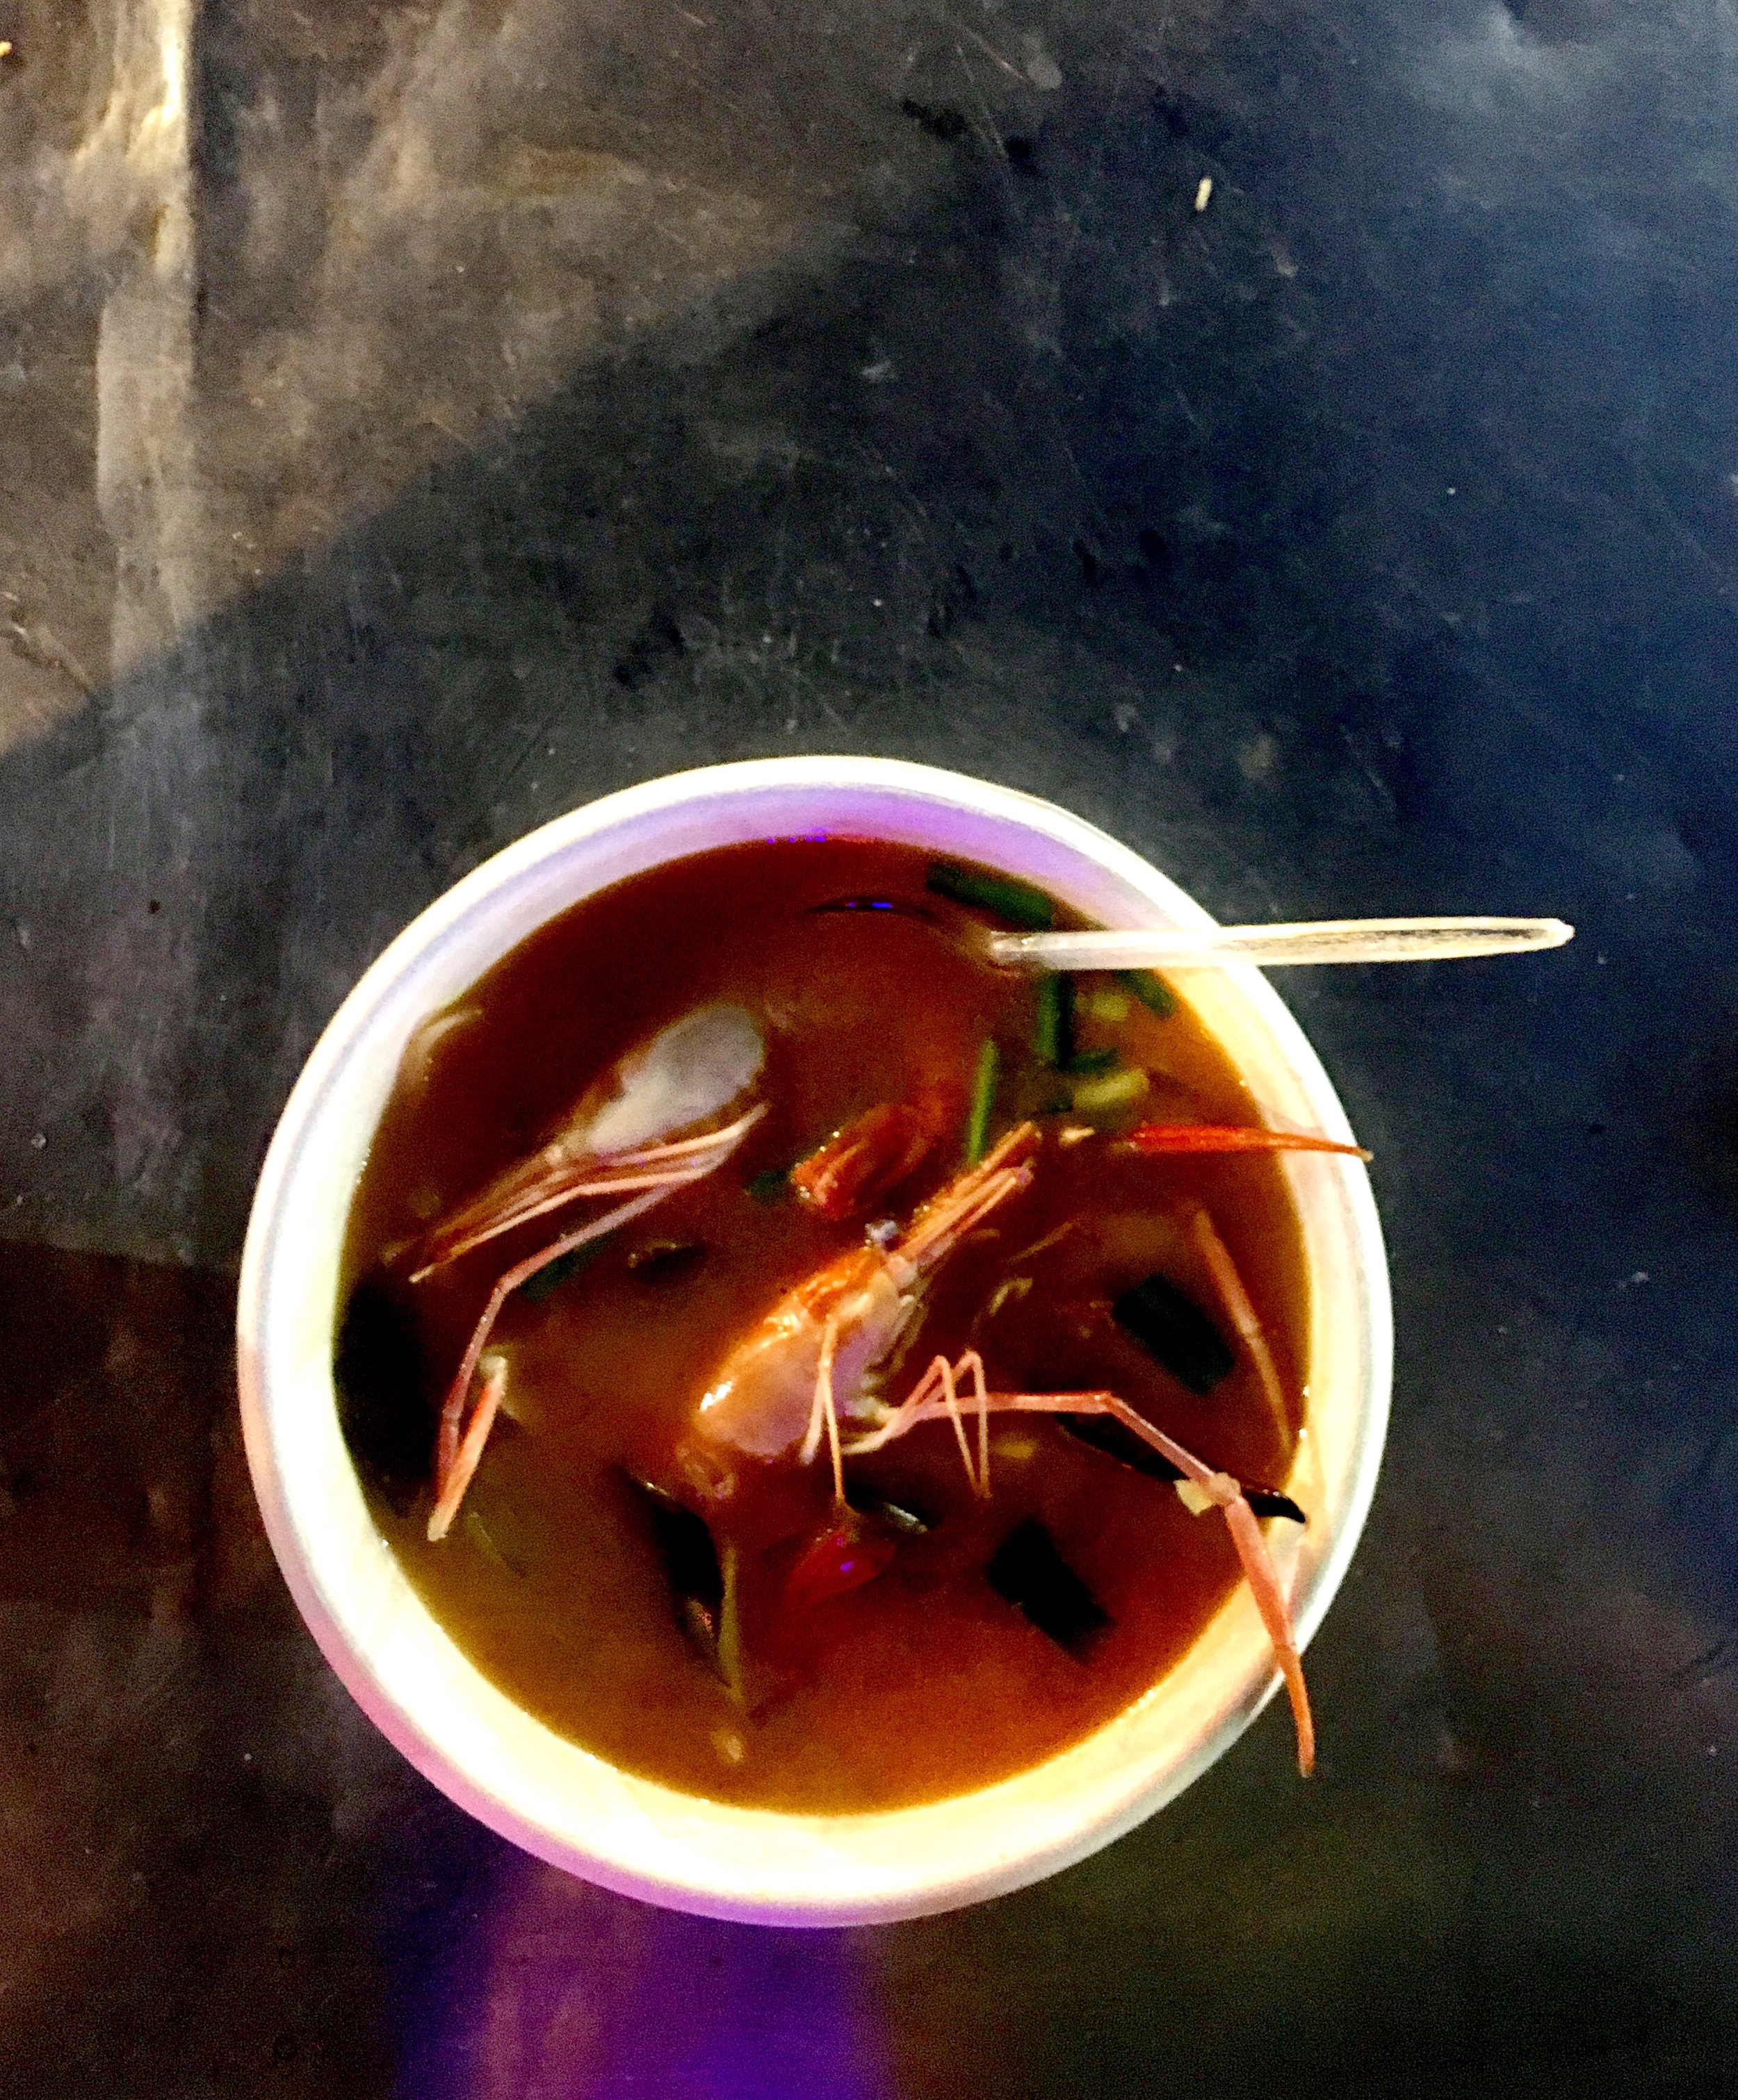 Giant shrimp peeked out of our delicious, piping hot tom yum soup